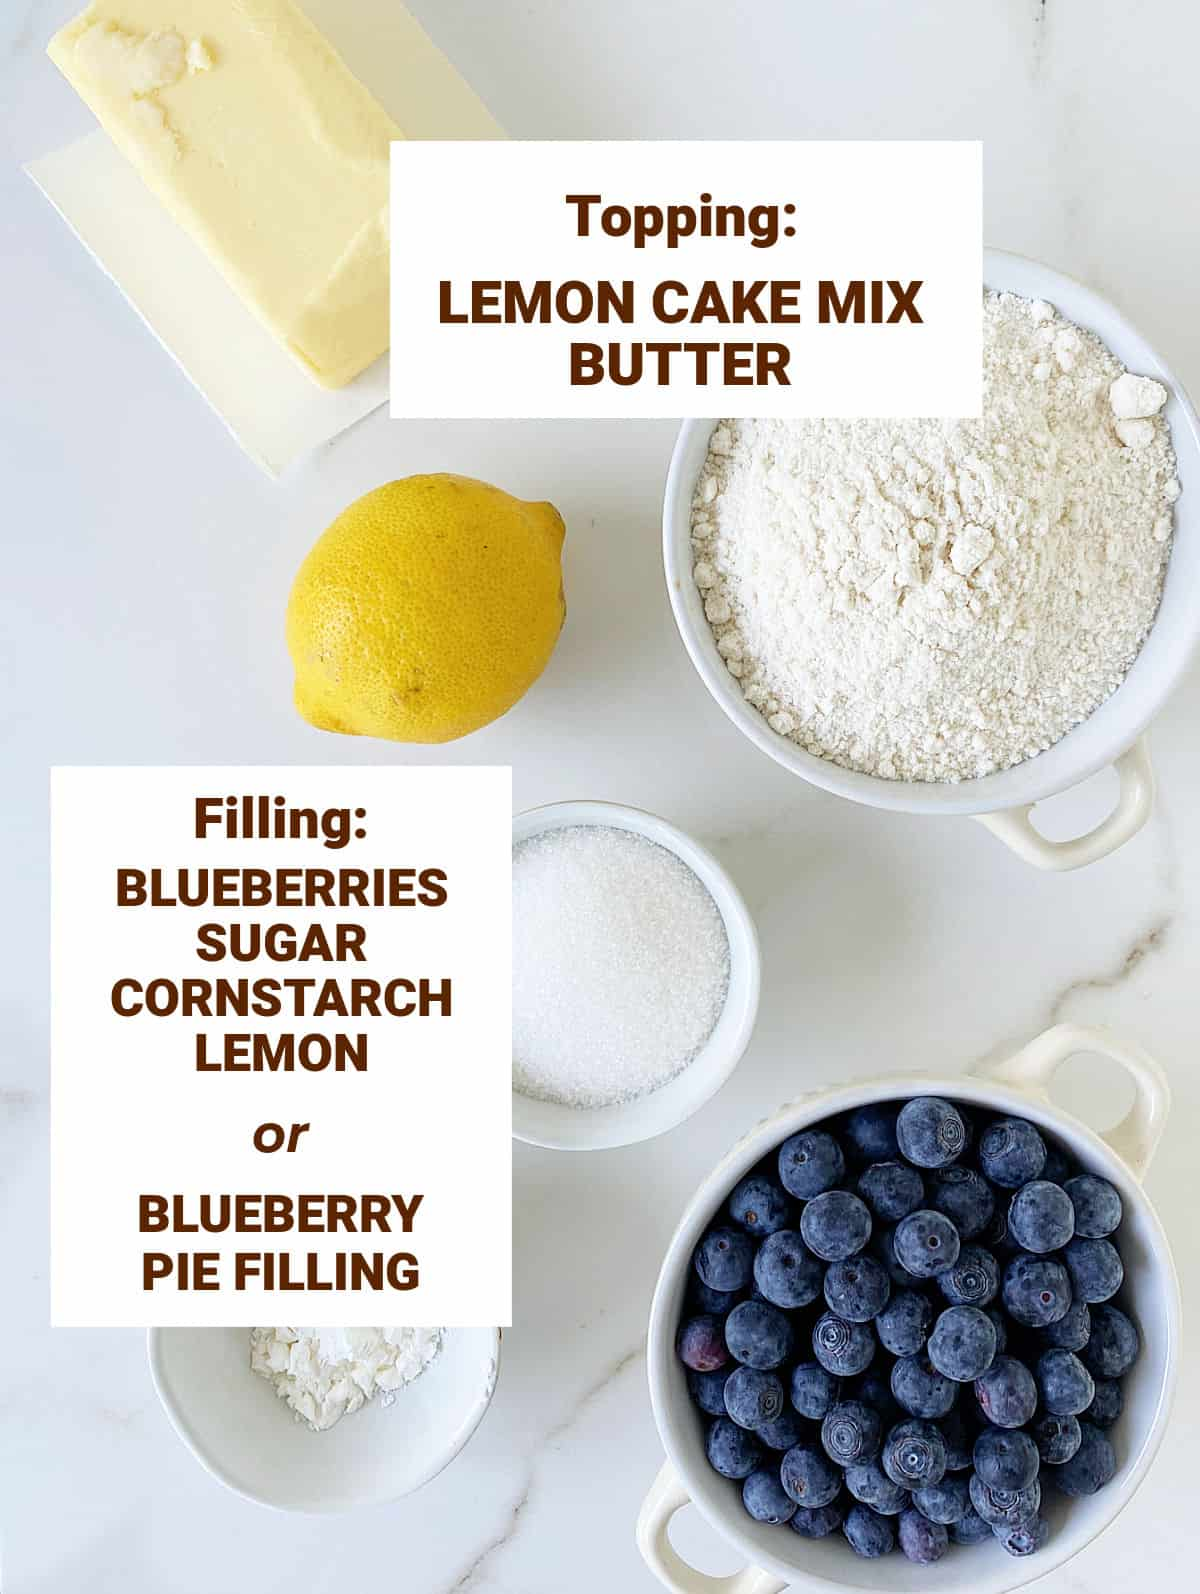 Ingredients for blueberry dump cake in bowl on white surface; text overlay